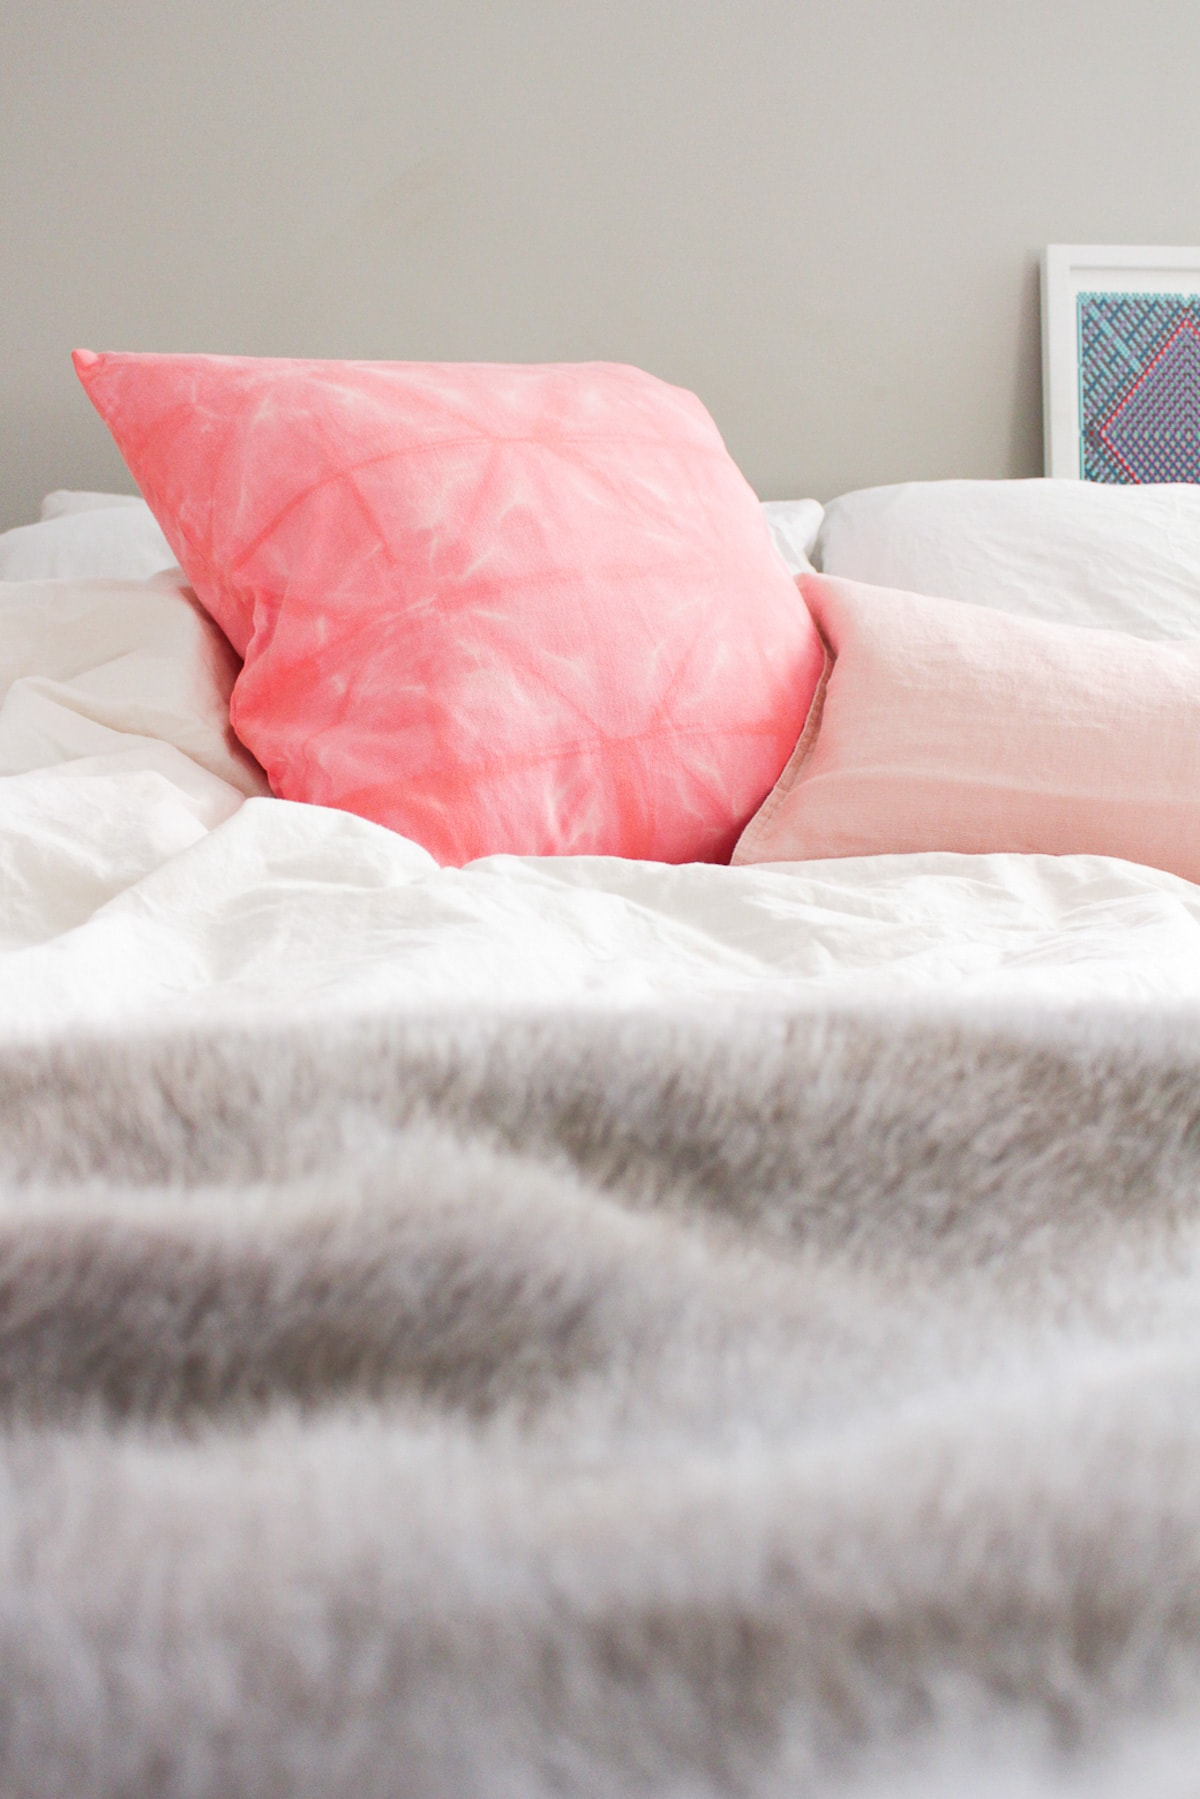 DIY Pink Shibori Throw Pillow par Sugar & Cloth, un blog de décoration et de bricolage primé.